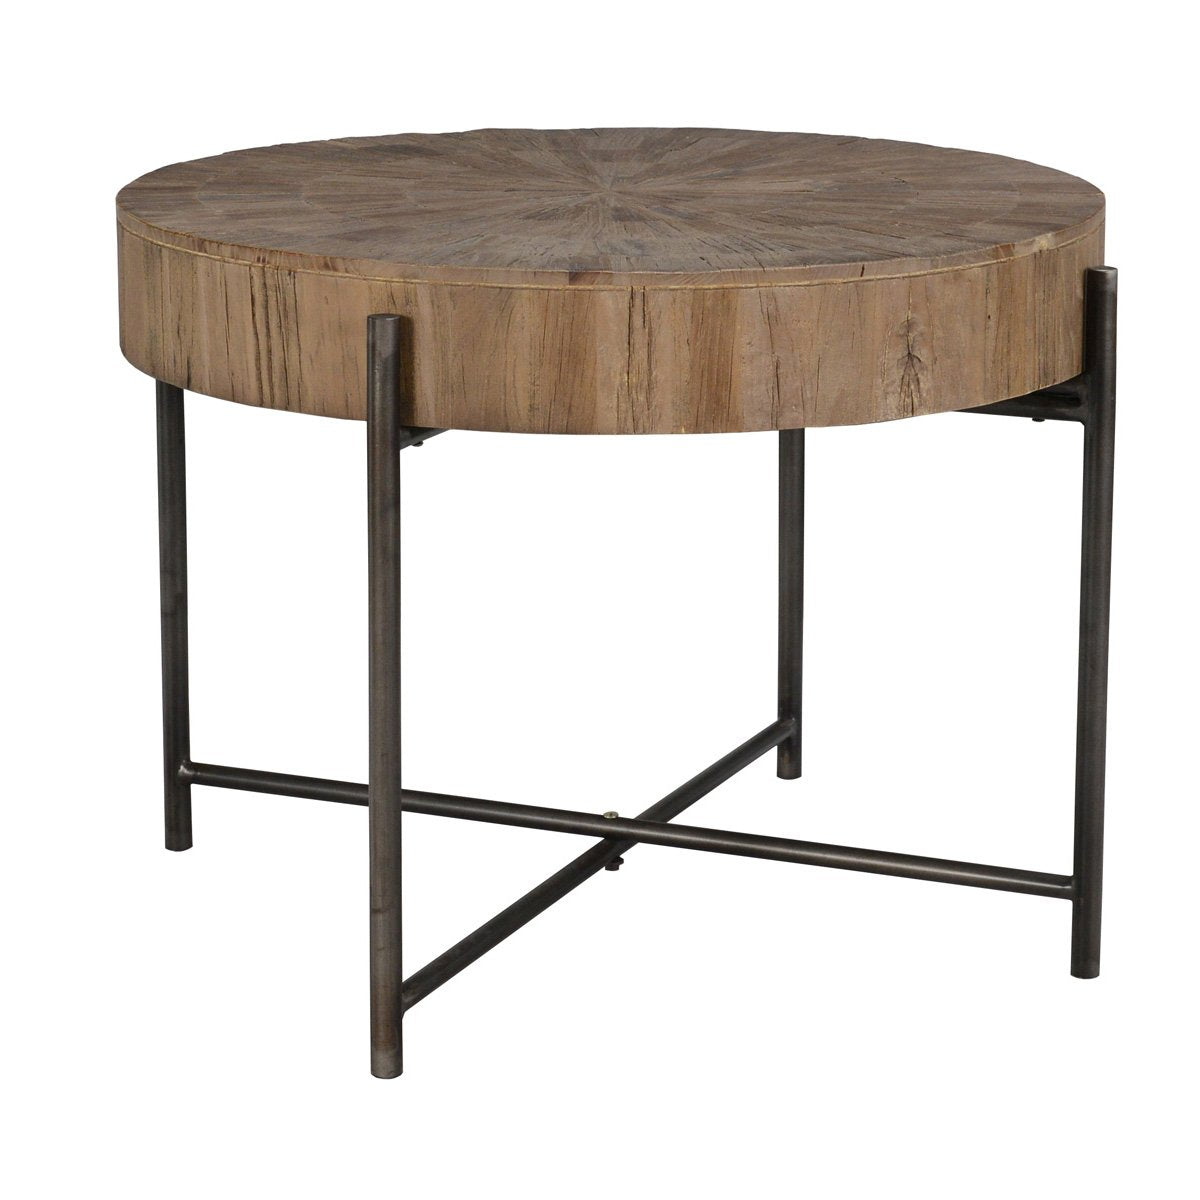 Molly Coffee Table 28""